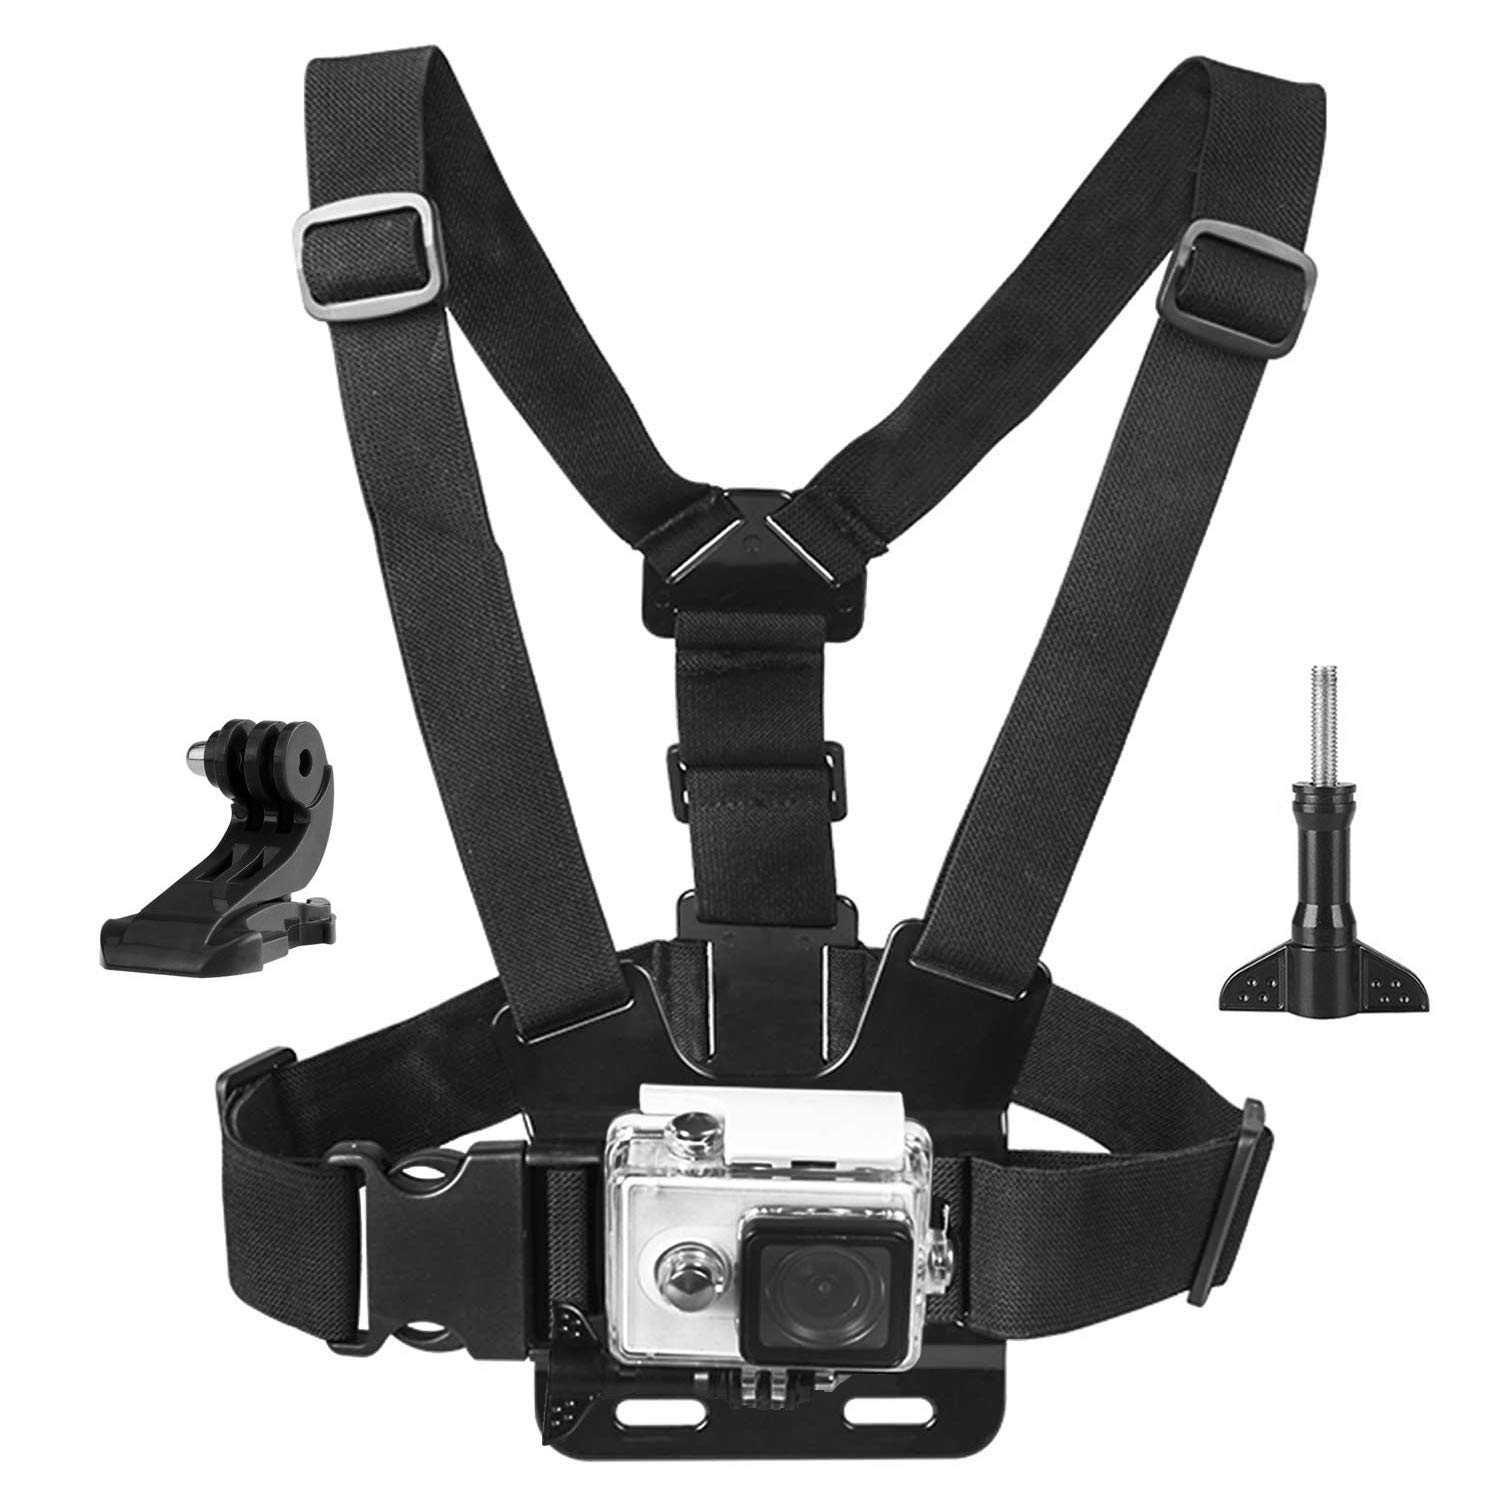 Topmener Chest Mount Harness Chest Strap Compatible with Gopro Hero 7, 6, 5, Hero 4/5 Session, Hero+ LCD, 3+, 3, 2, 1, DJI Osmo with Thumbscrew and J-Hook, Fully Adjustable by Topmener